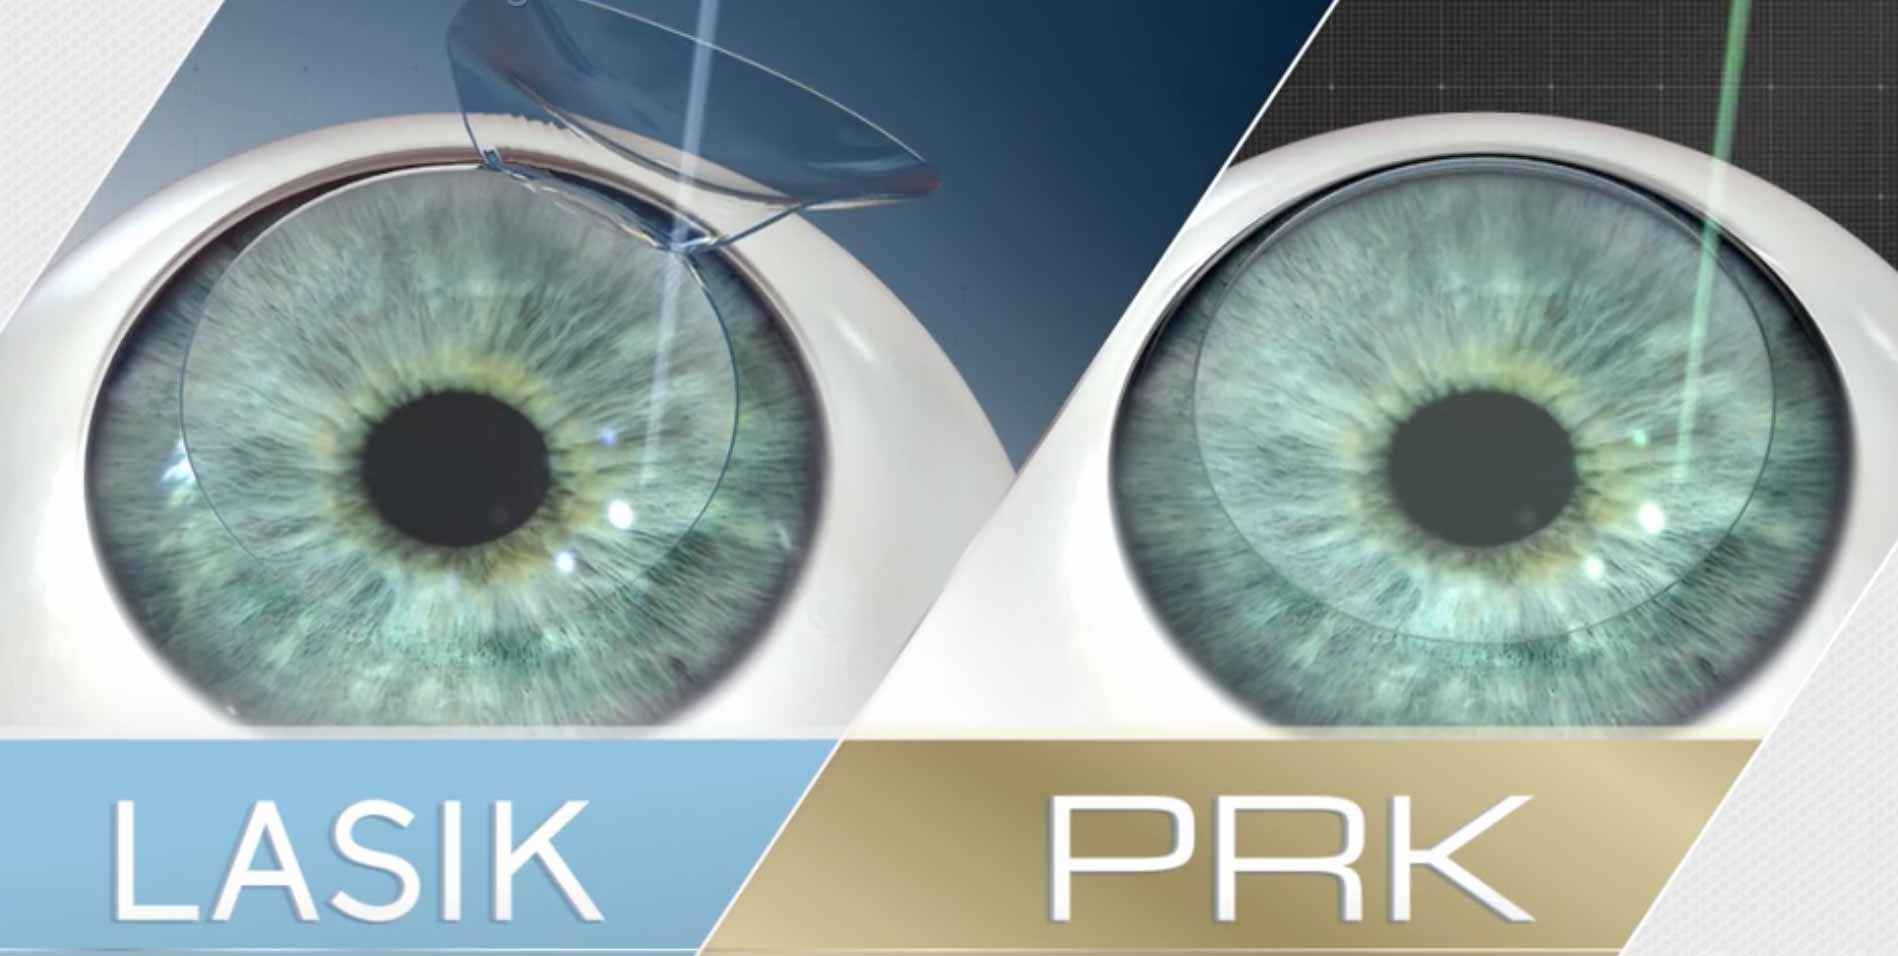 PRK vs LASIK: What's the Difference?